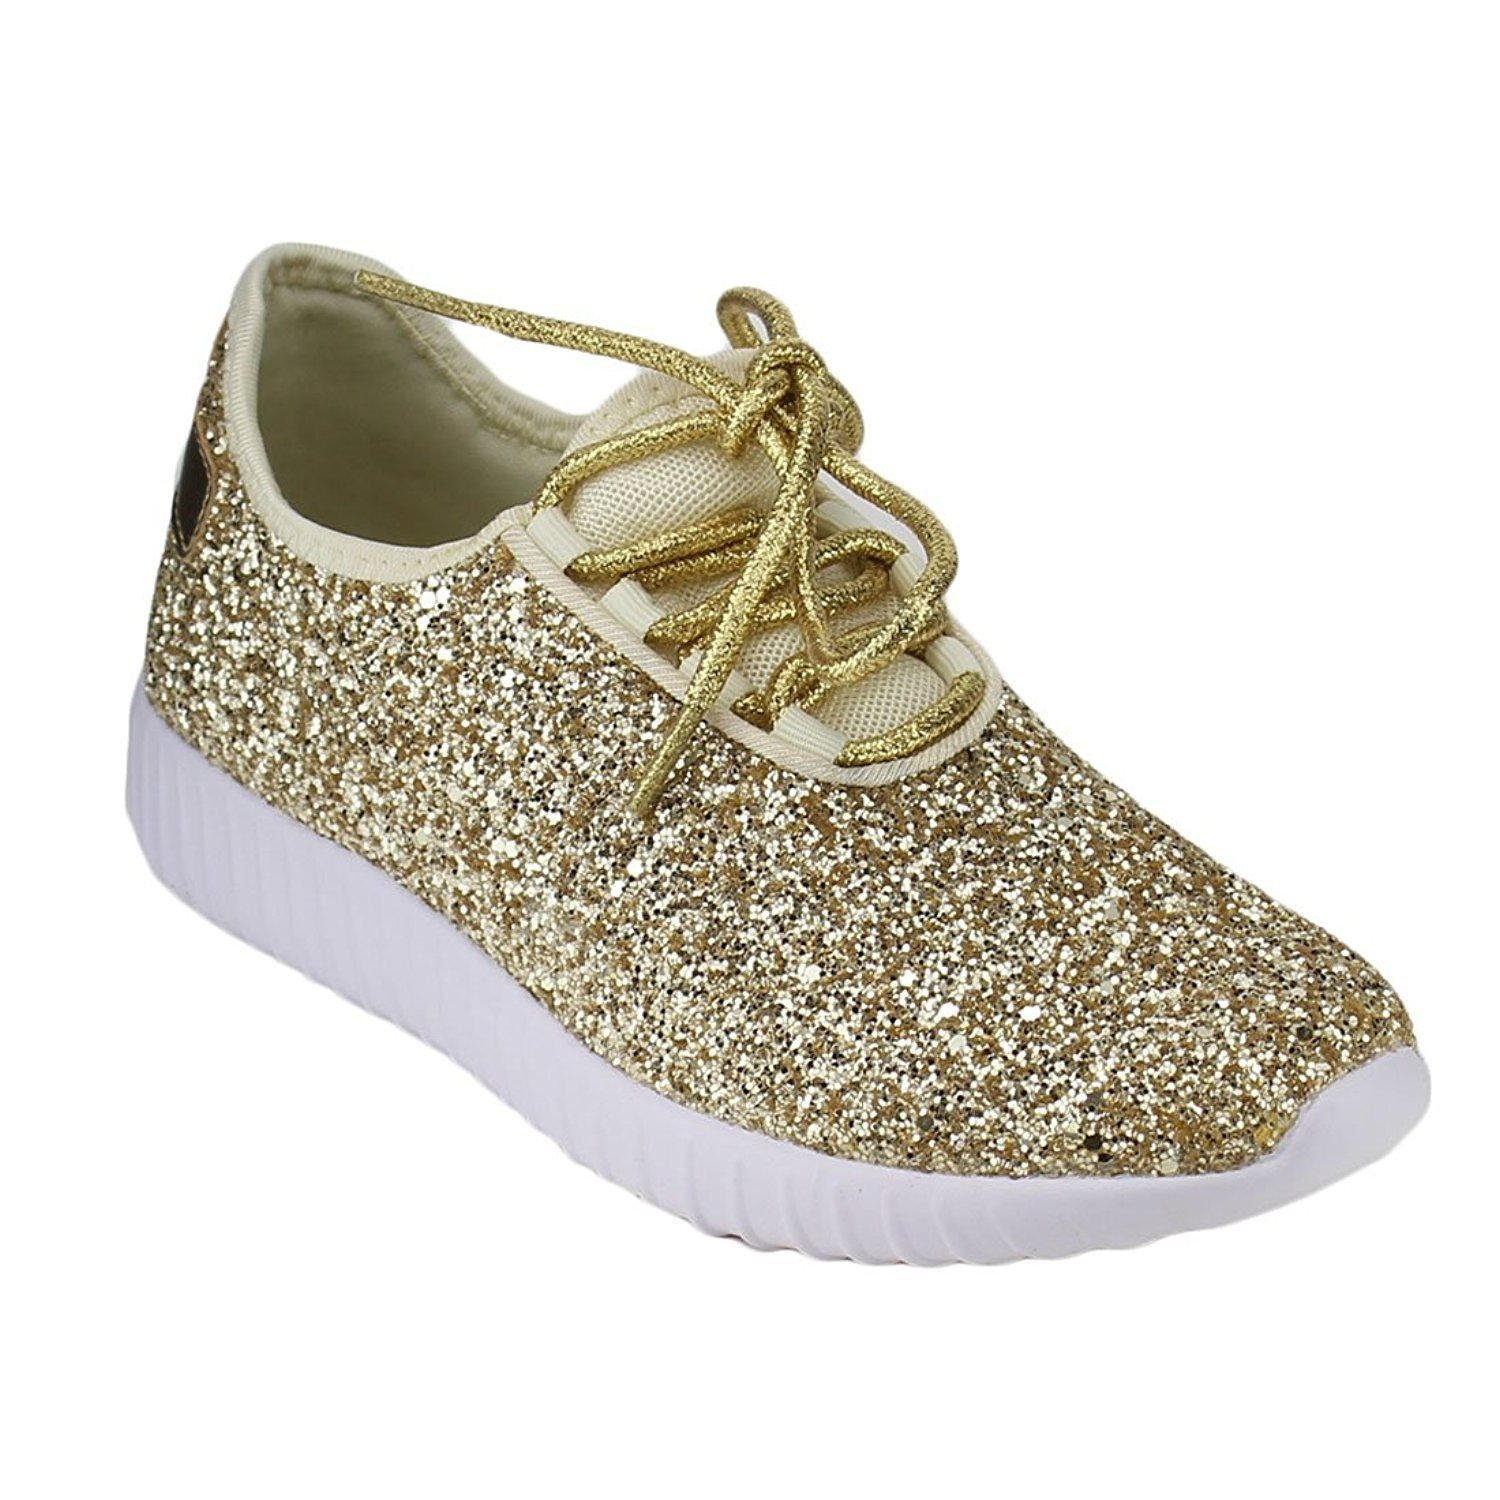 Link Remy18k Lace up Rock Glitter Fashion Sneaker for Children Girl Kids, Gold, 11